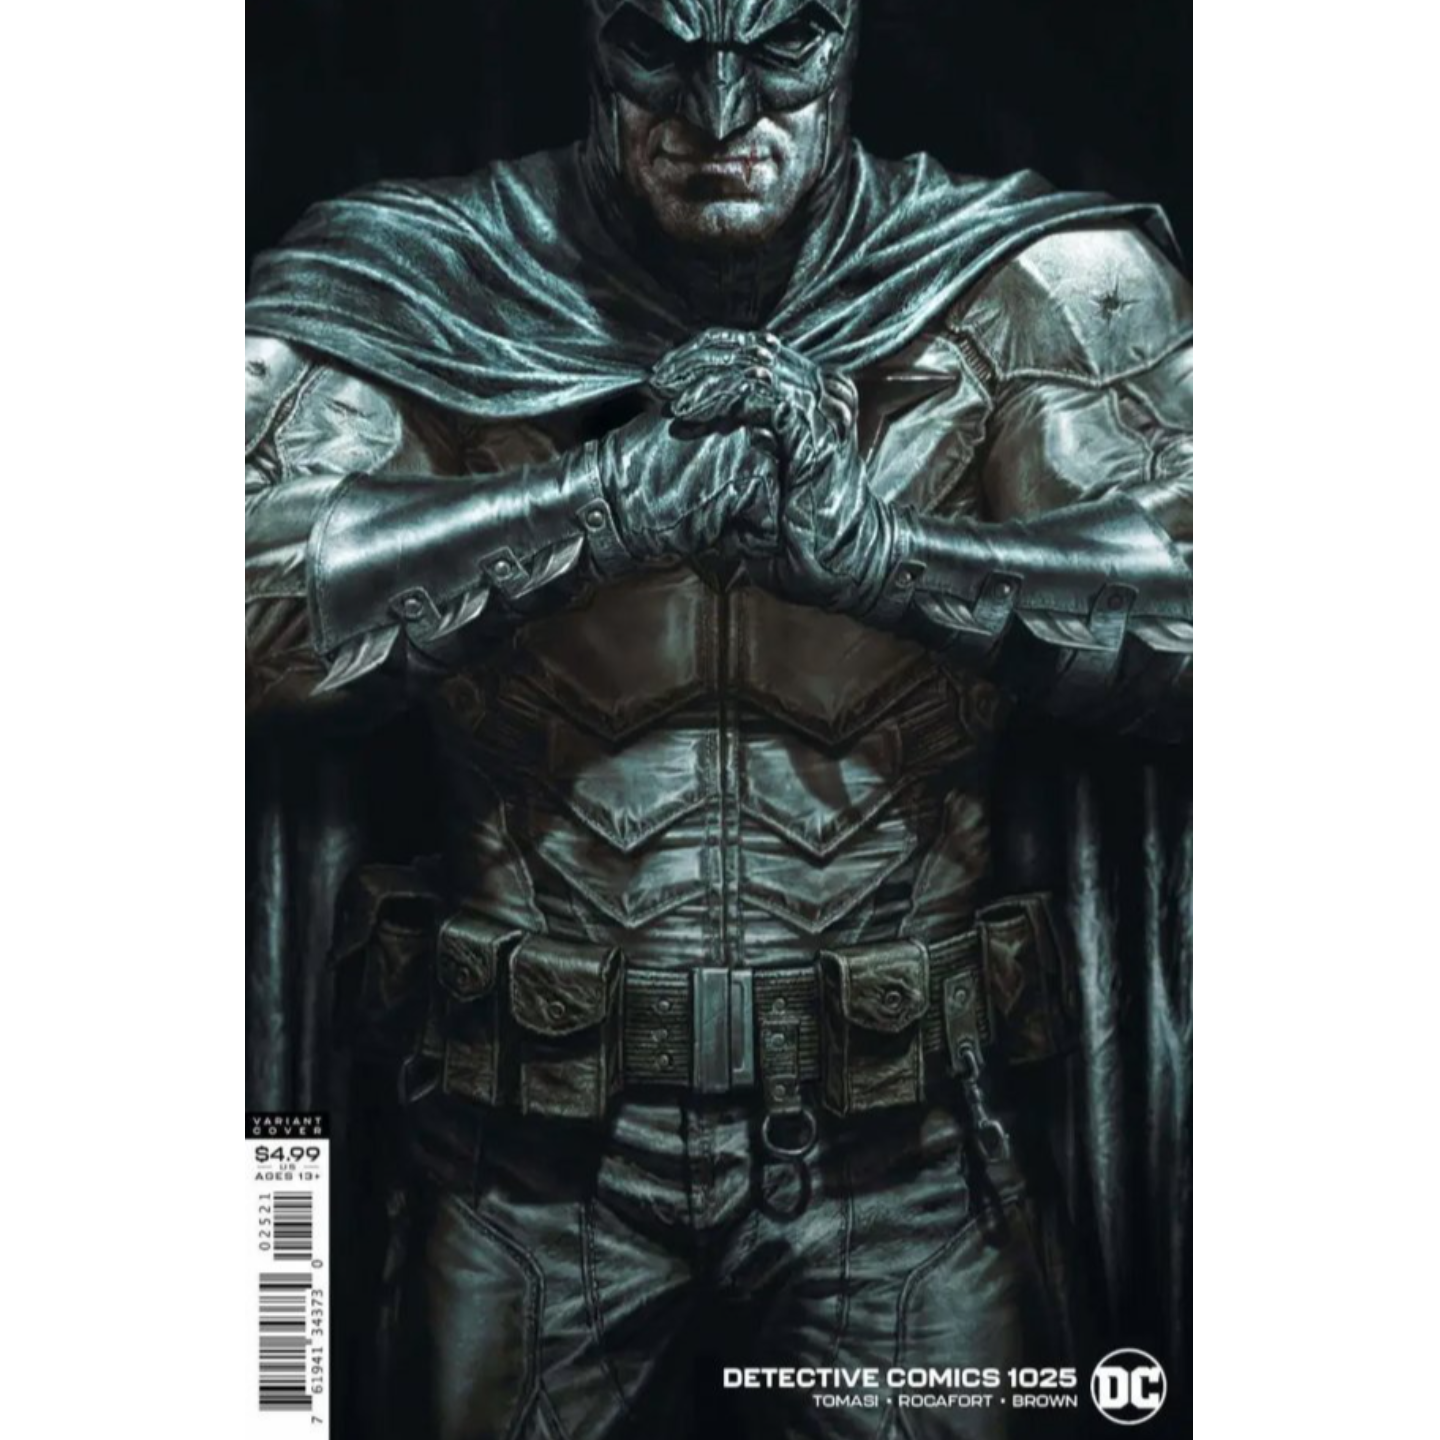 DETECTIVE COMICS #1025 CVR B LEE BERMEJO CARD STOCK VAR (JOKER WAR)